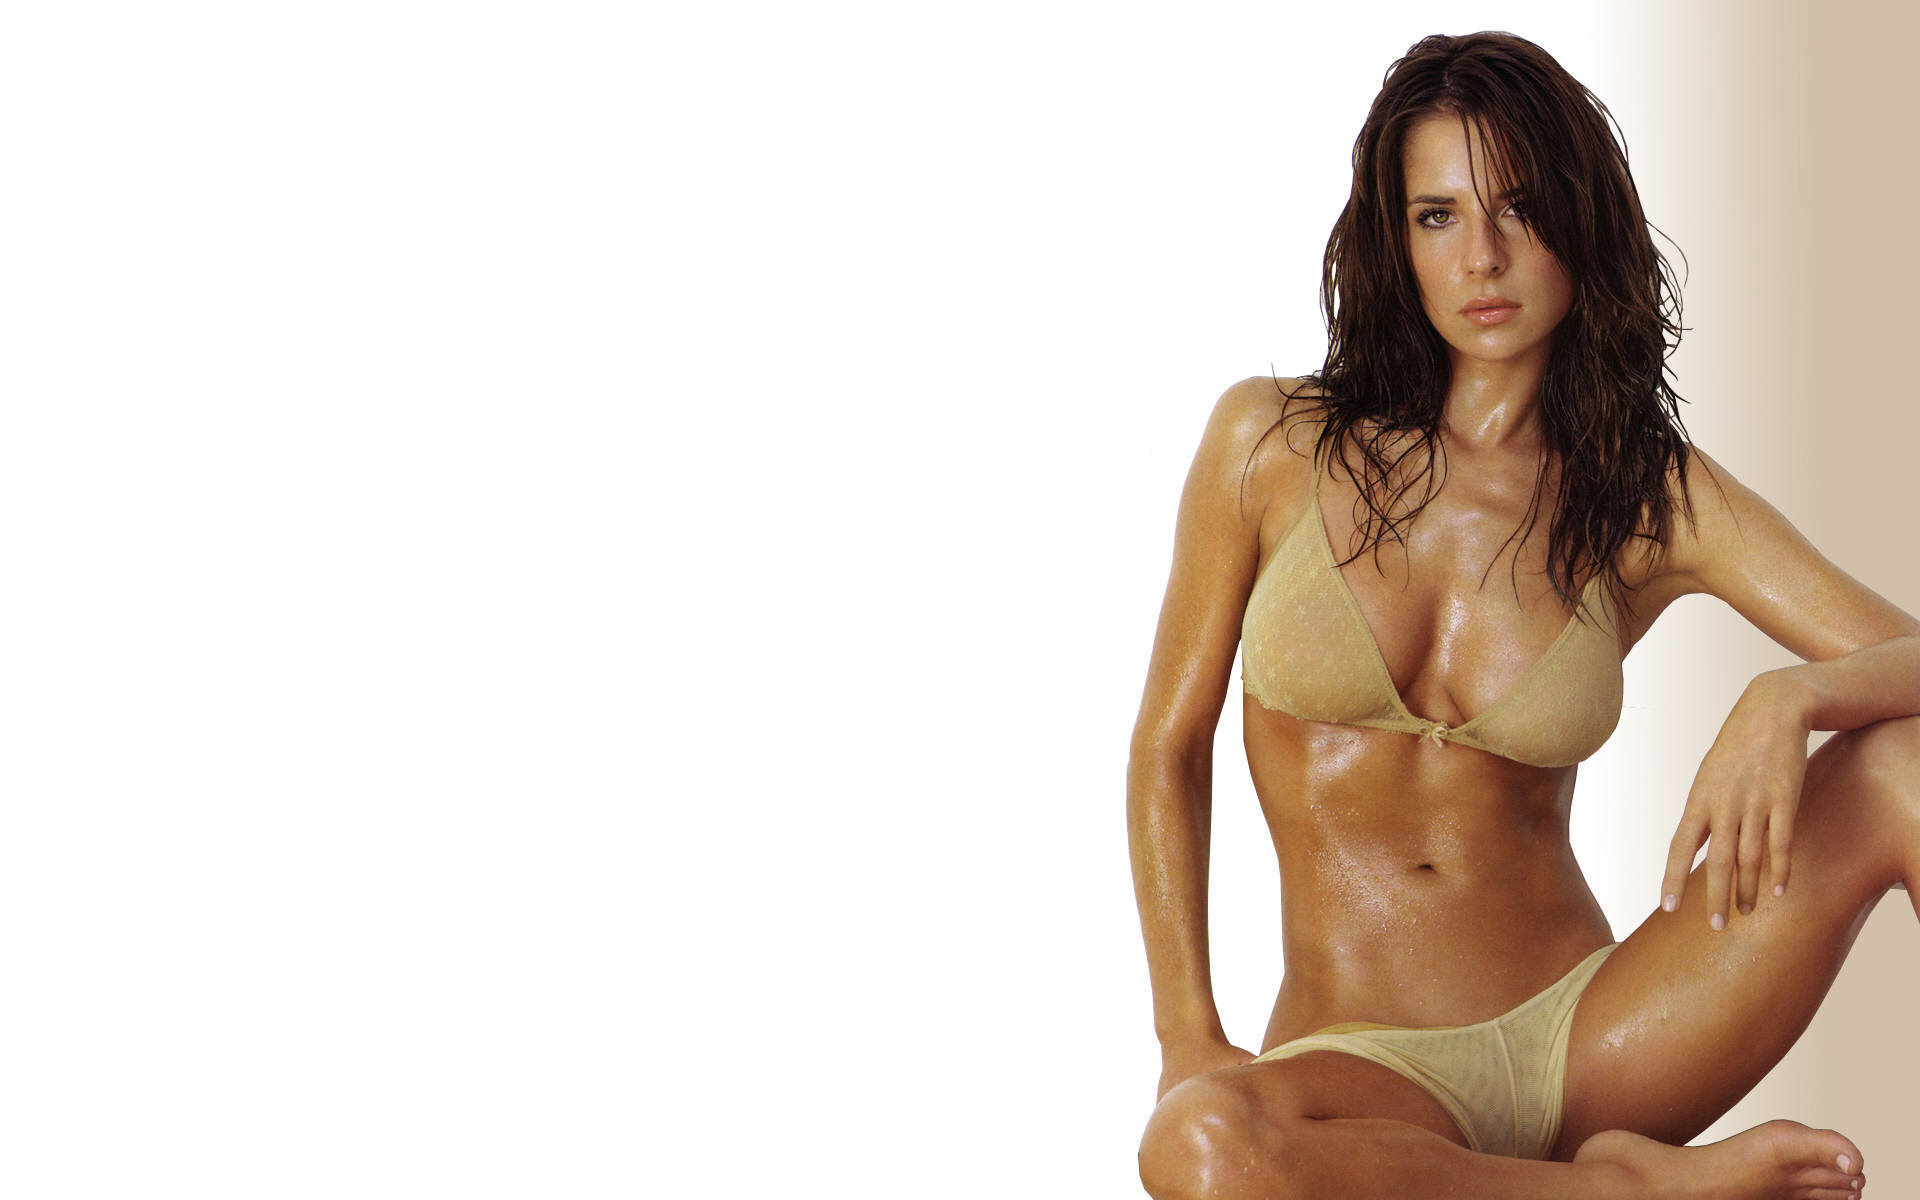 kelly monaco images kelly hd wallpaper and background photos (11466287)